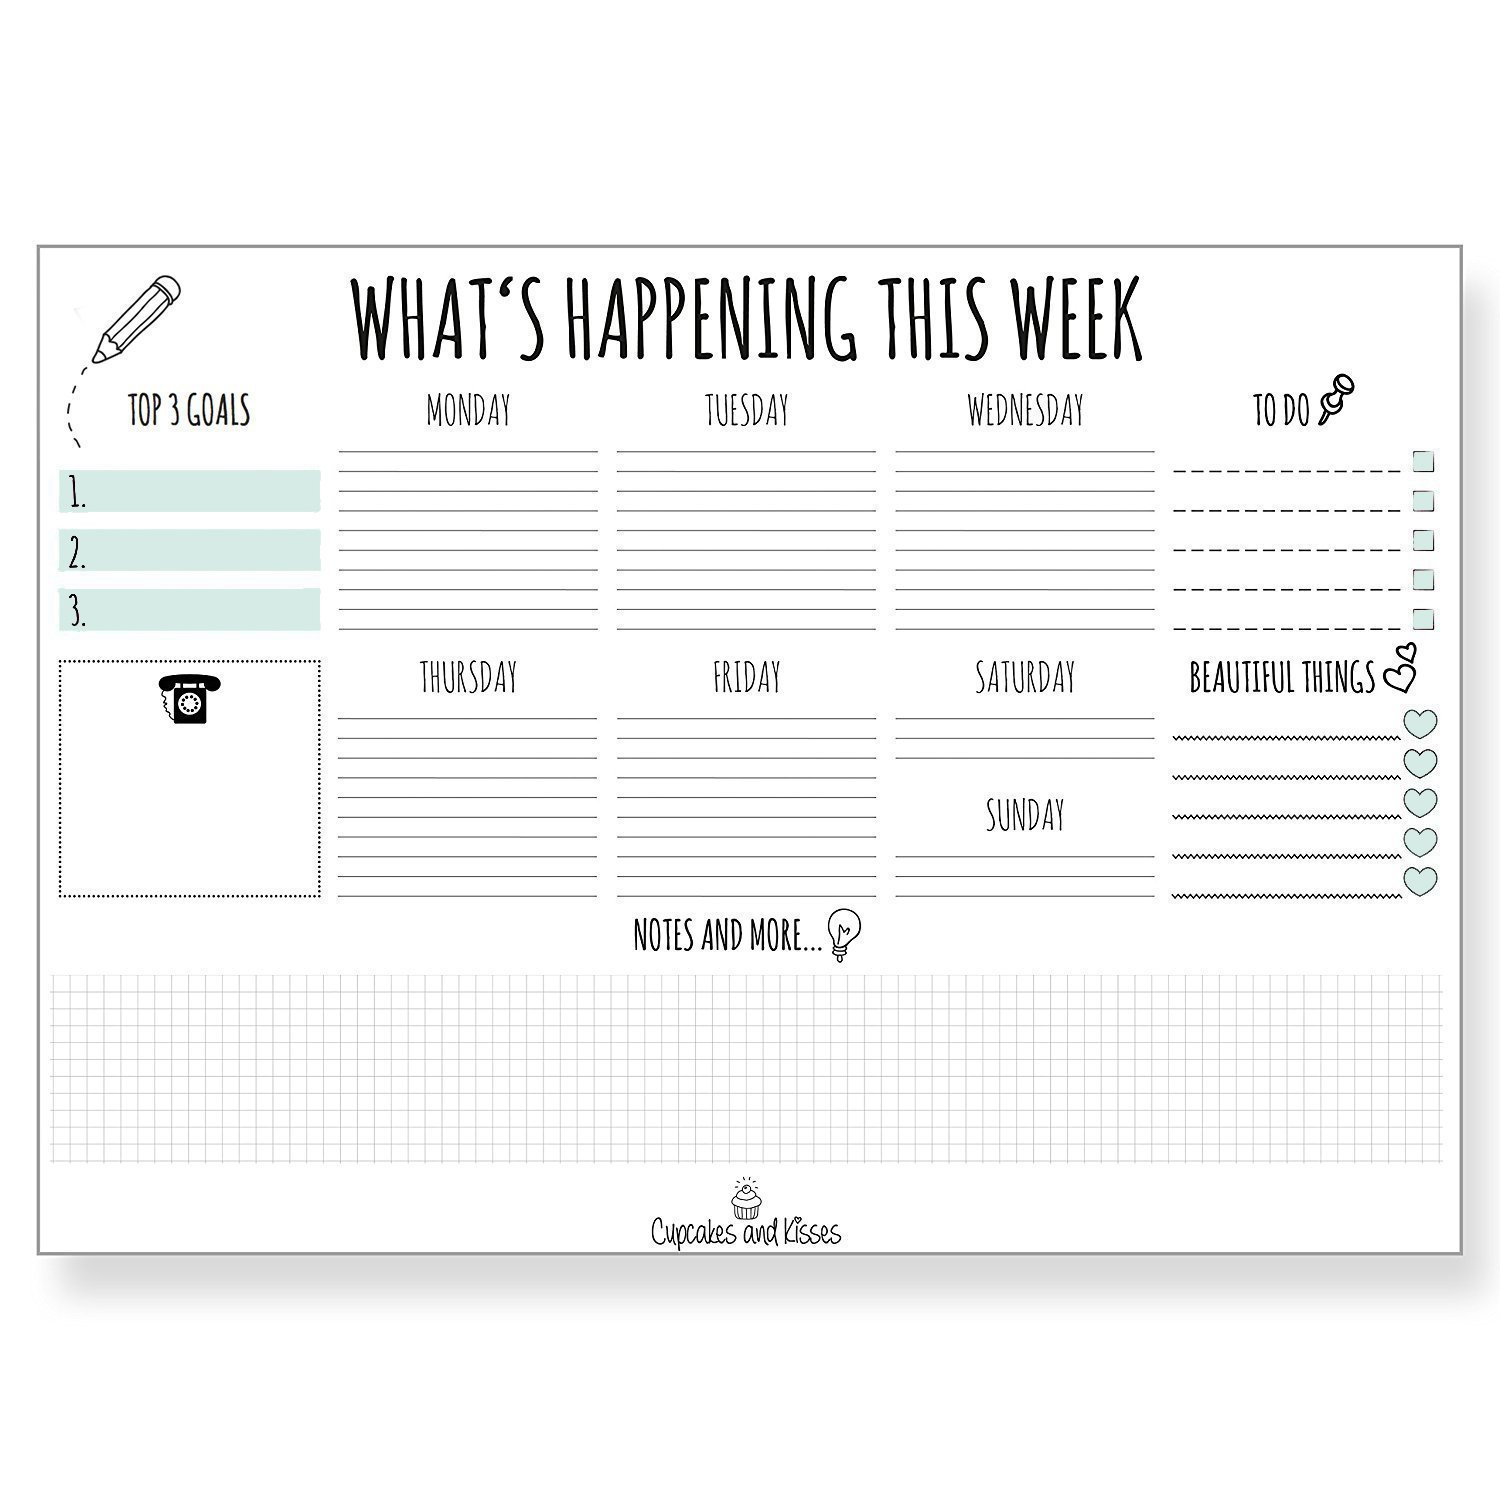 Cupcakes & Kisses Desk Pad Calendar for Writing I Paper I Tear-Off Sheets I for Dates & Notes I Daily Planner & Weekly Overview I to-Do List I 2018